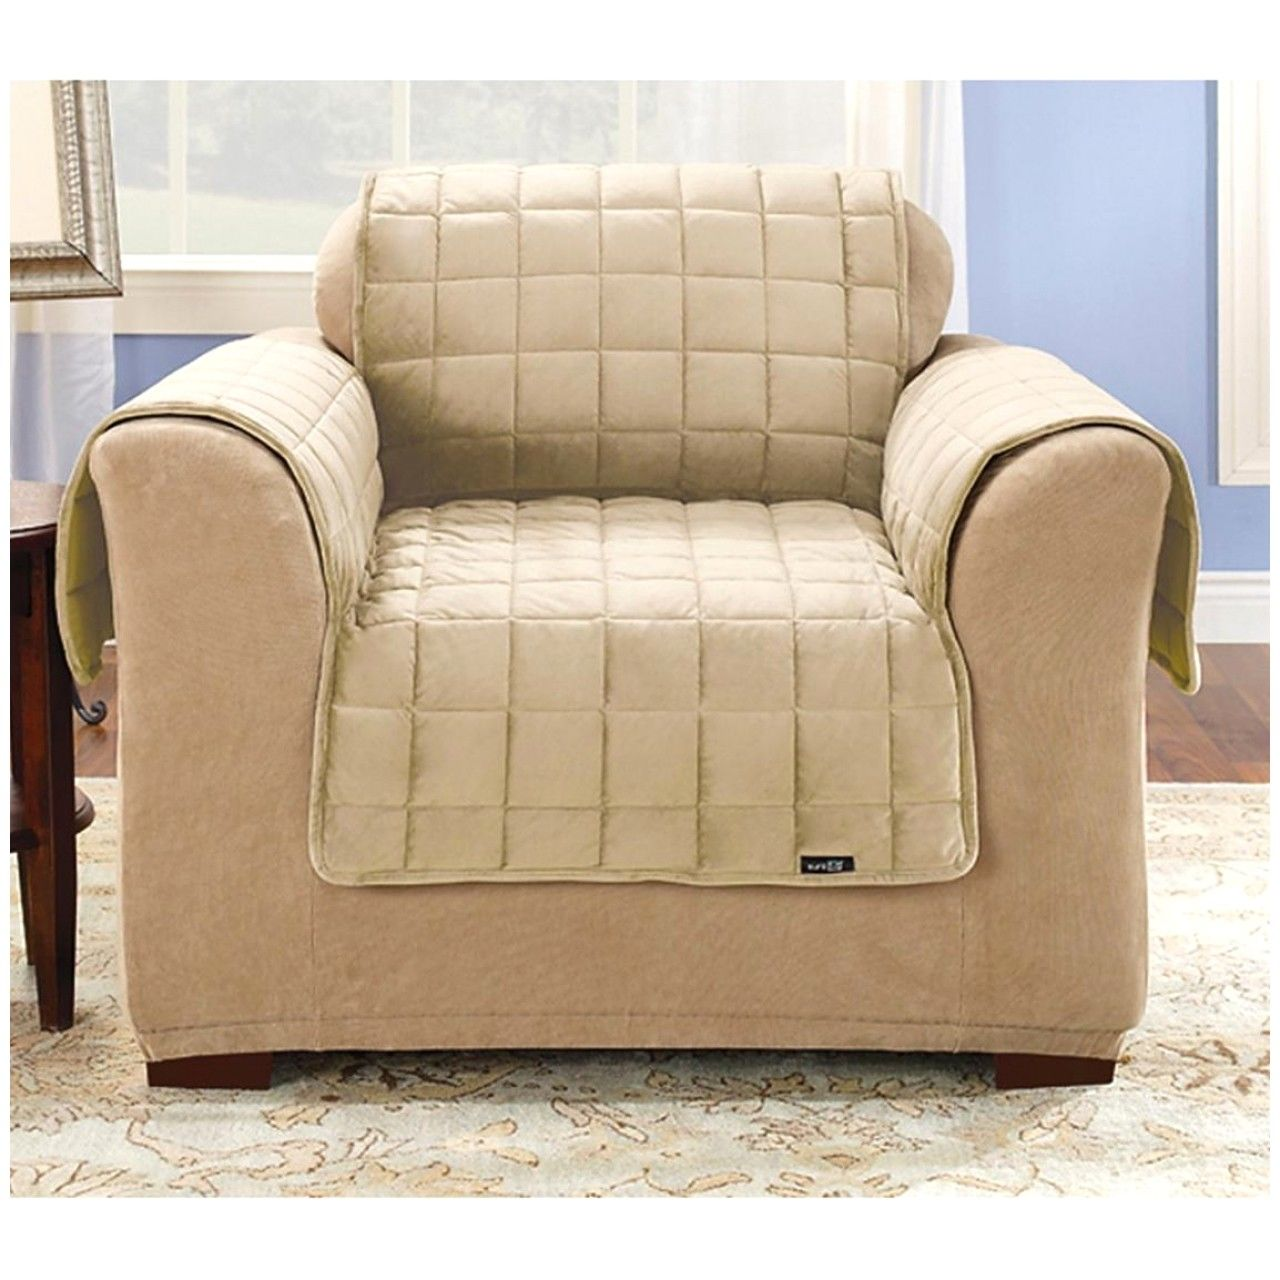 lovely bed bath beyond sofa covers photo-Sensational Bed Bath Beyond sofa Covers Construction